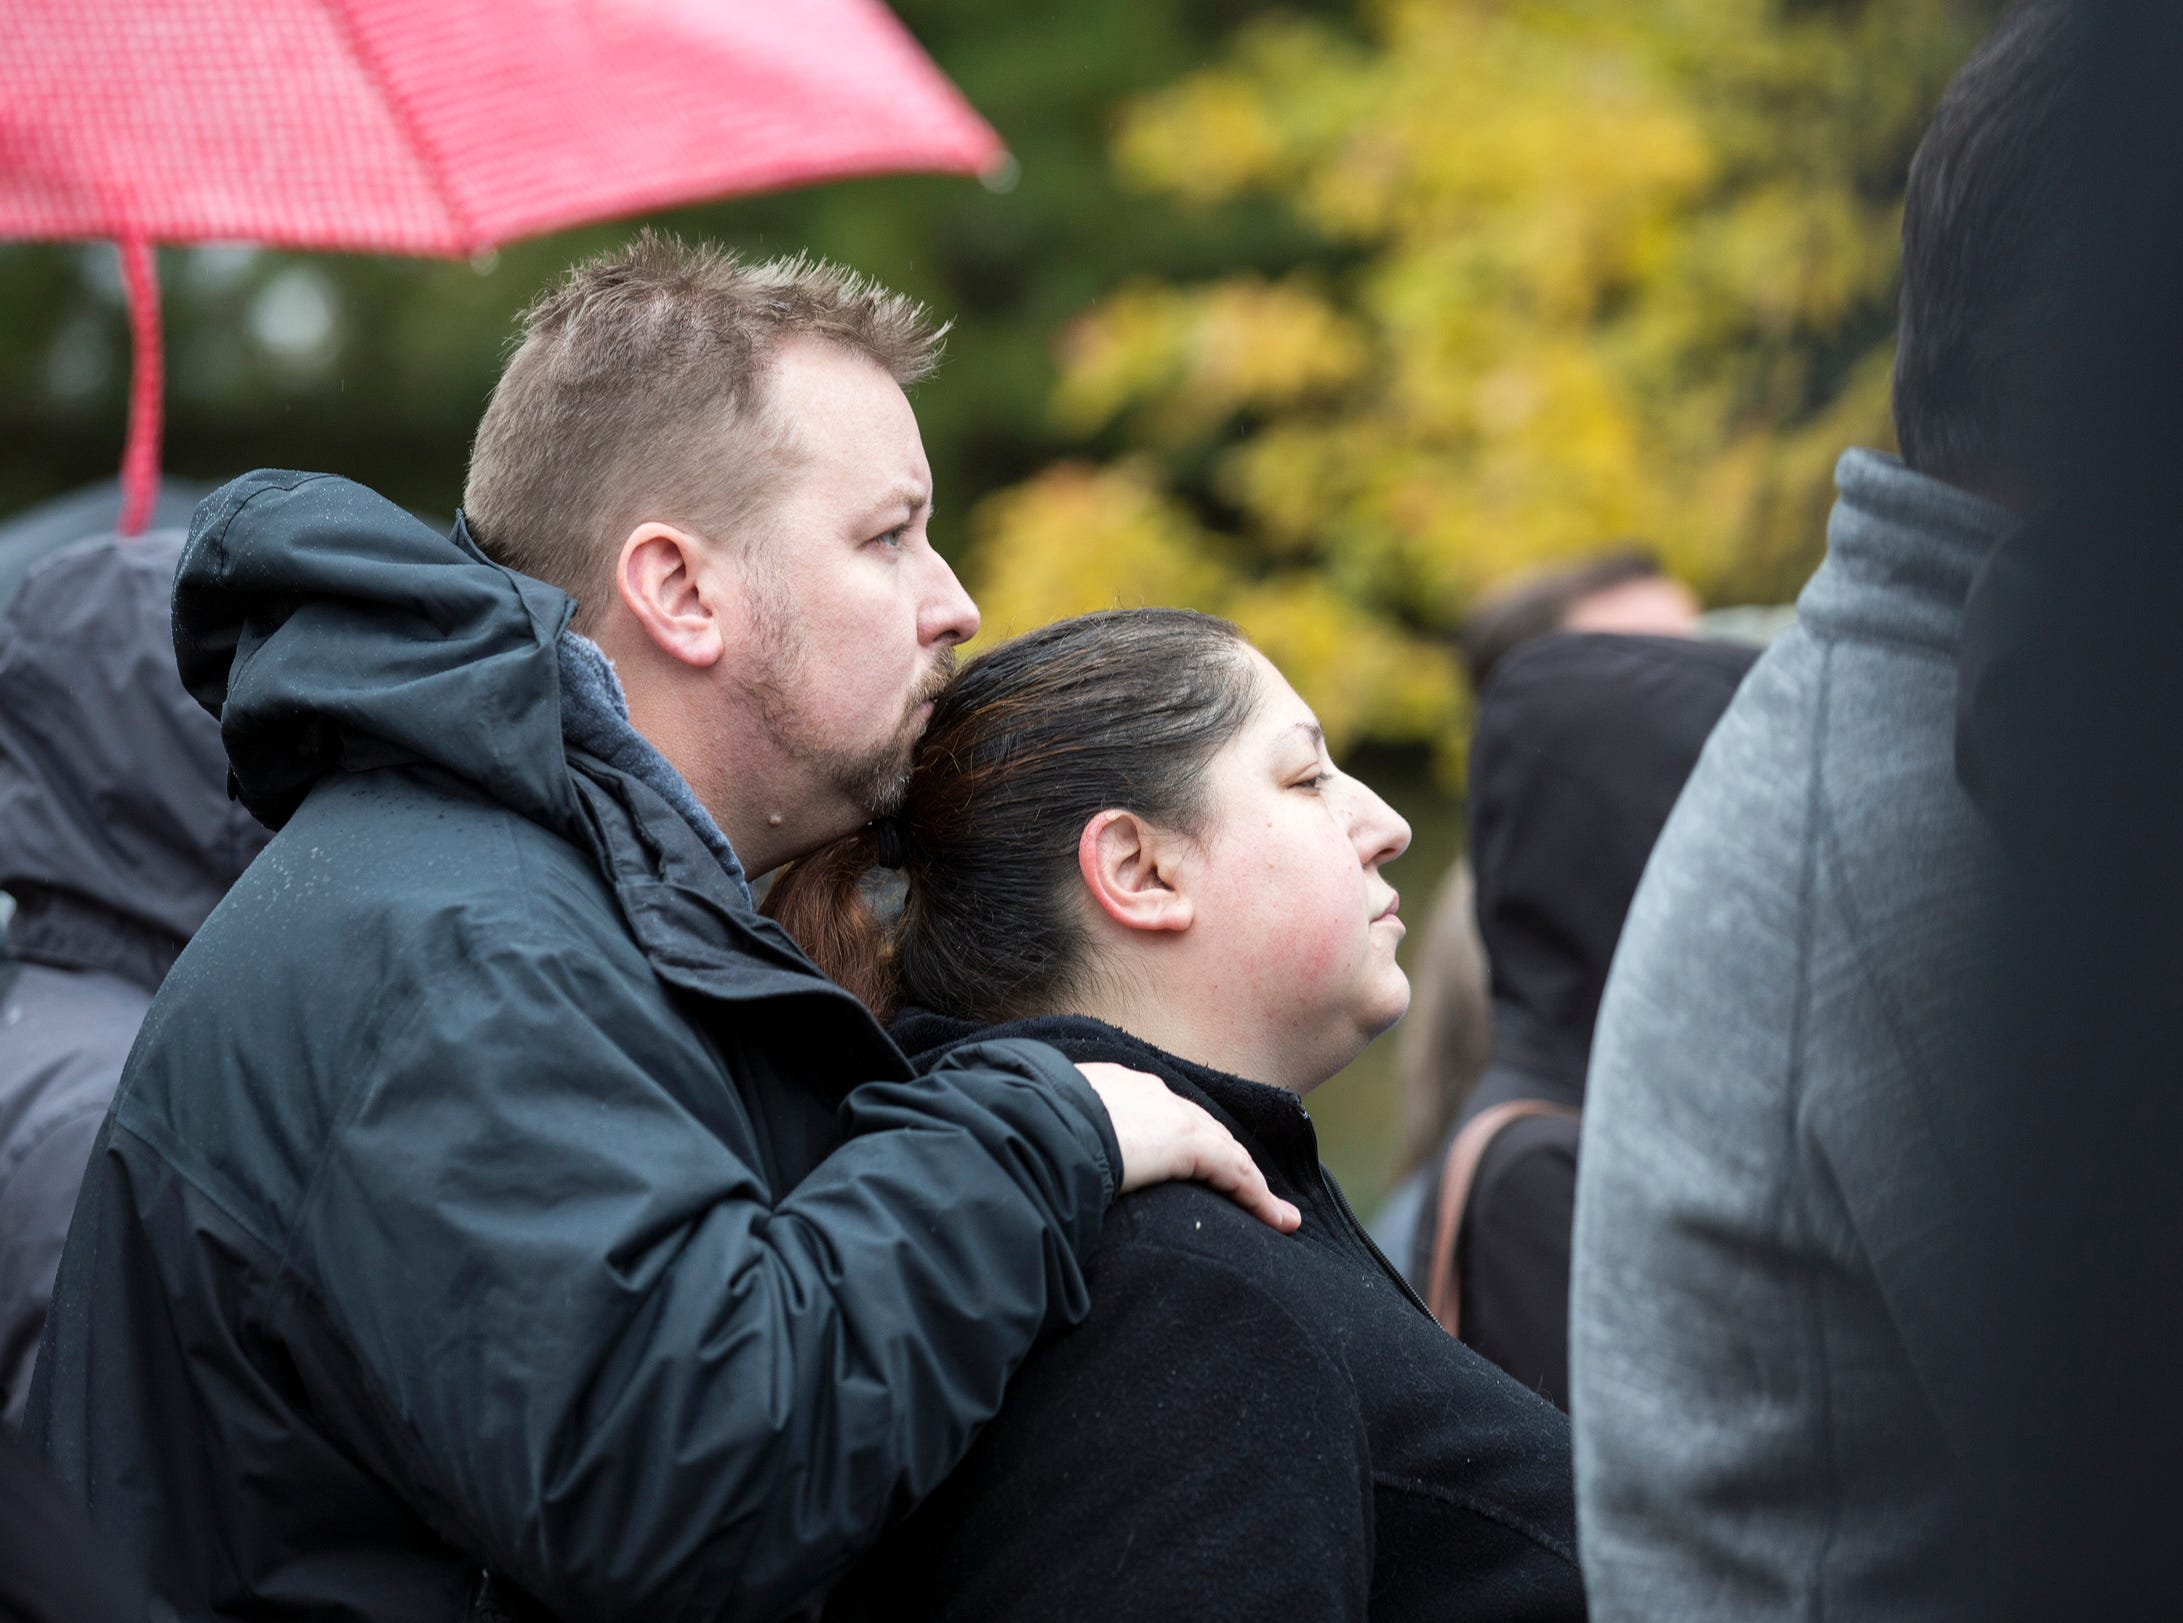 From left, Ross Sandelius, 37 and his wife Julie Bagley, 38 of Ferndale, comfort each other during a vigil, in honor of 11 people who were killed during a mass shooting in Pittsburgh, at Jewish Ferndale in Ferndale, Mich., Sunday, Oct. 28, 2018.